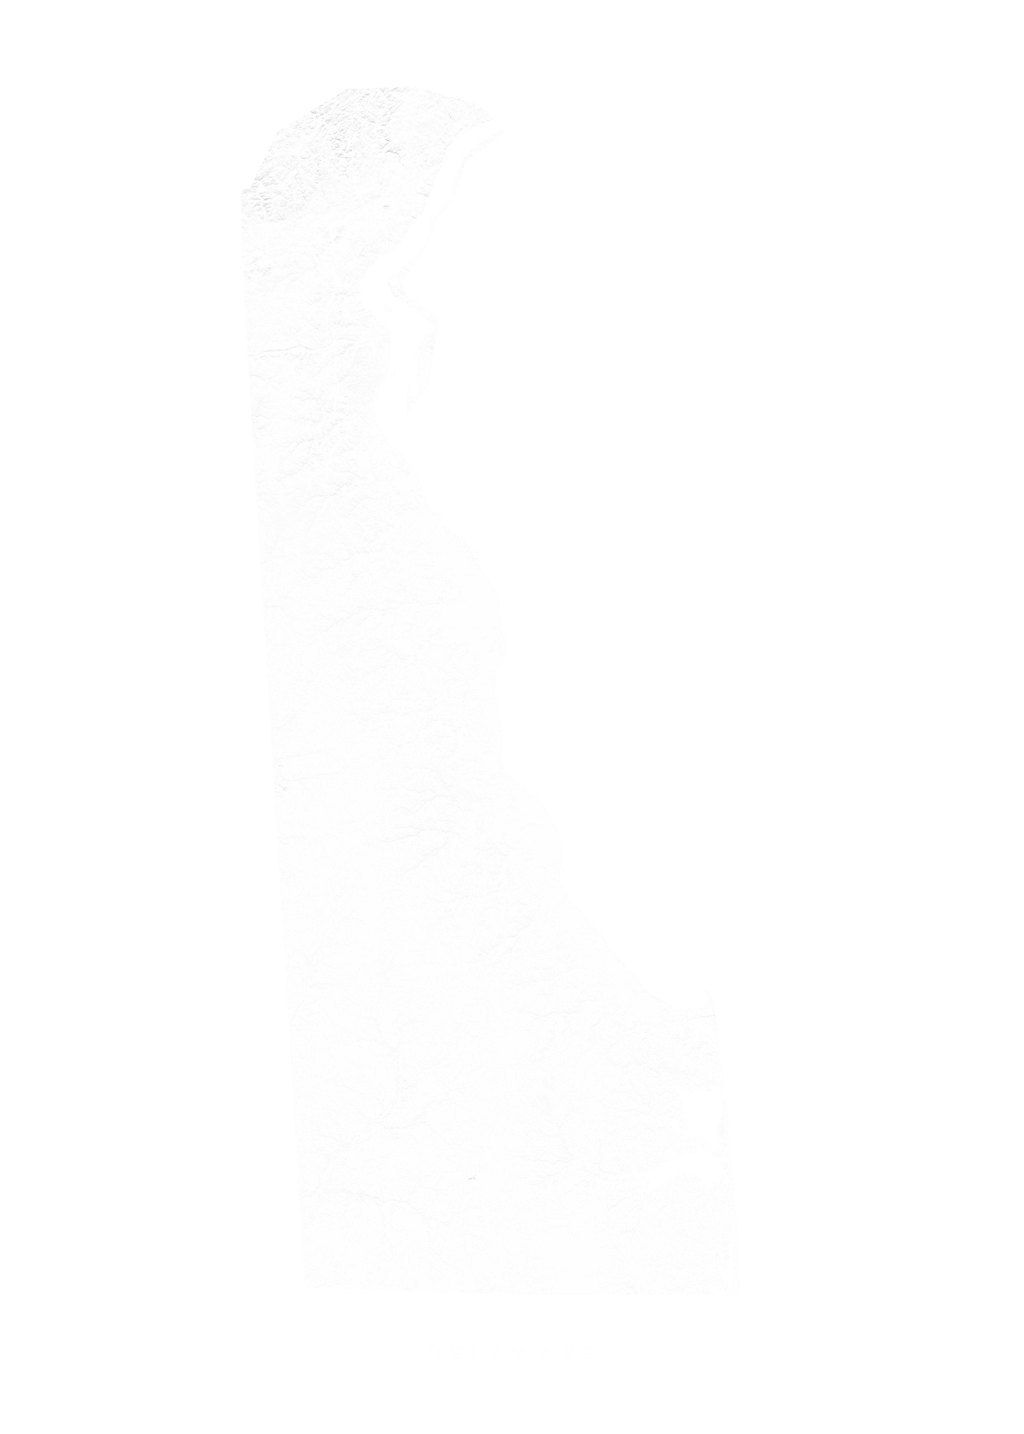 Delaware wall map